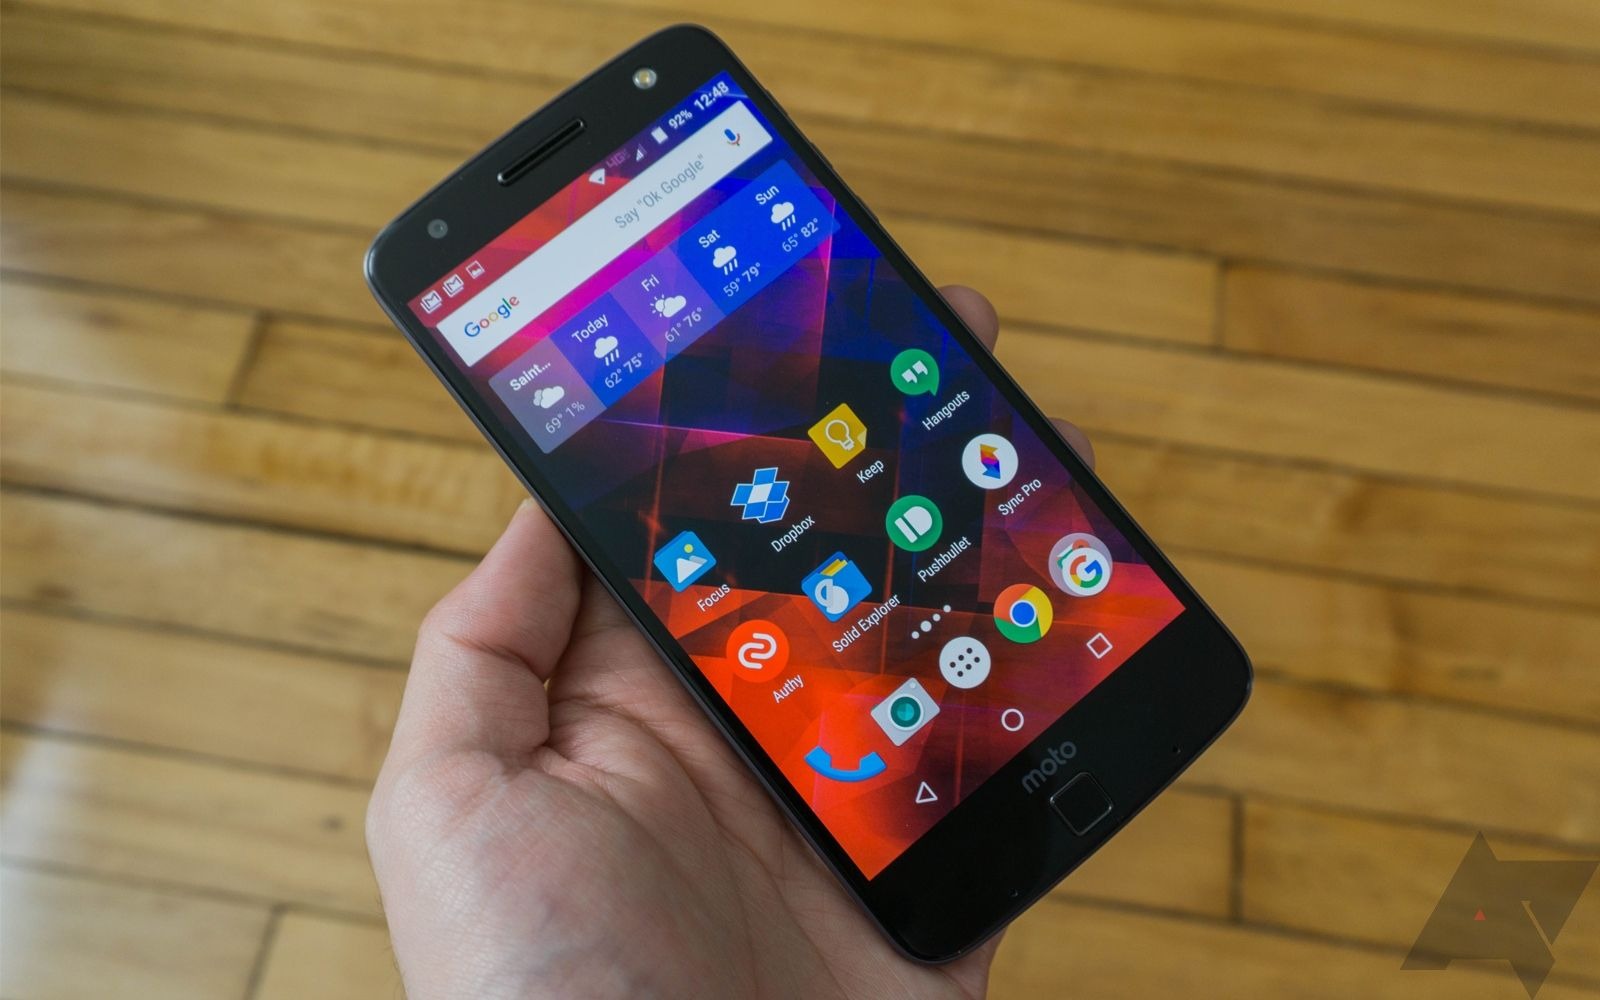 Update: Now available] LineageOS 15 1 Oreo arrives on the